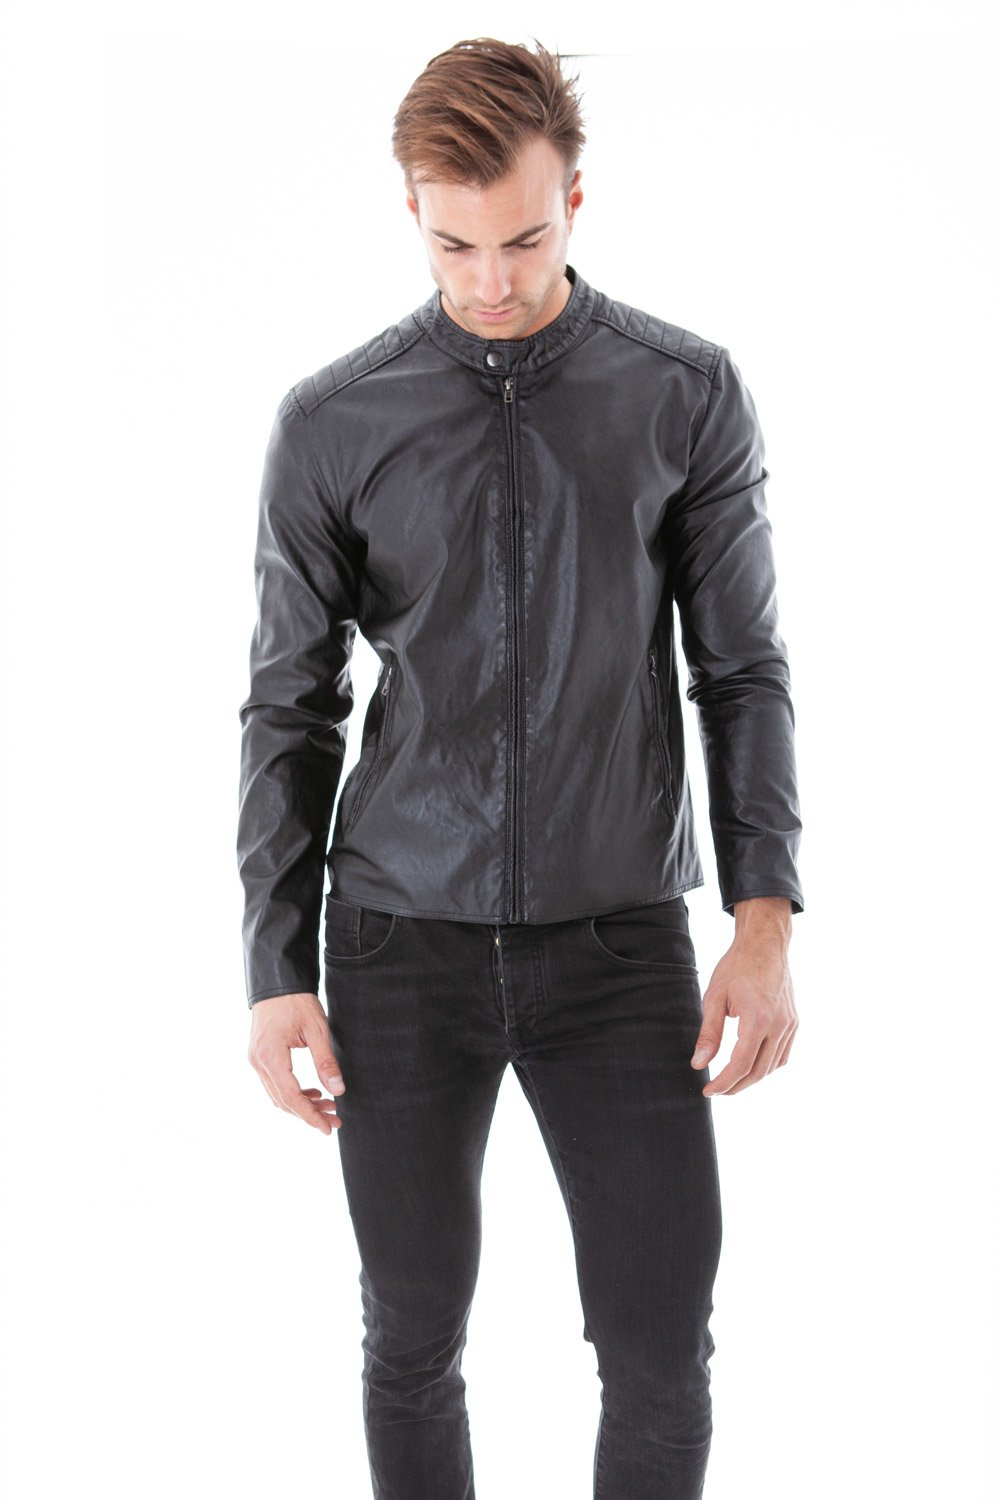 save off 40d0f a5cb1 jackets man - Censured